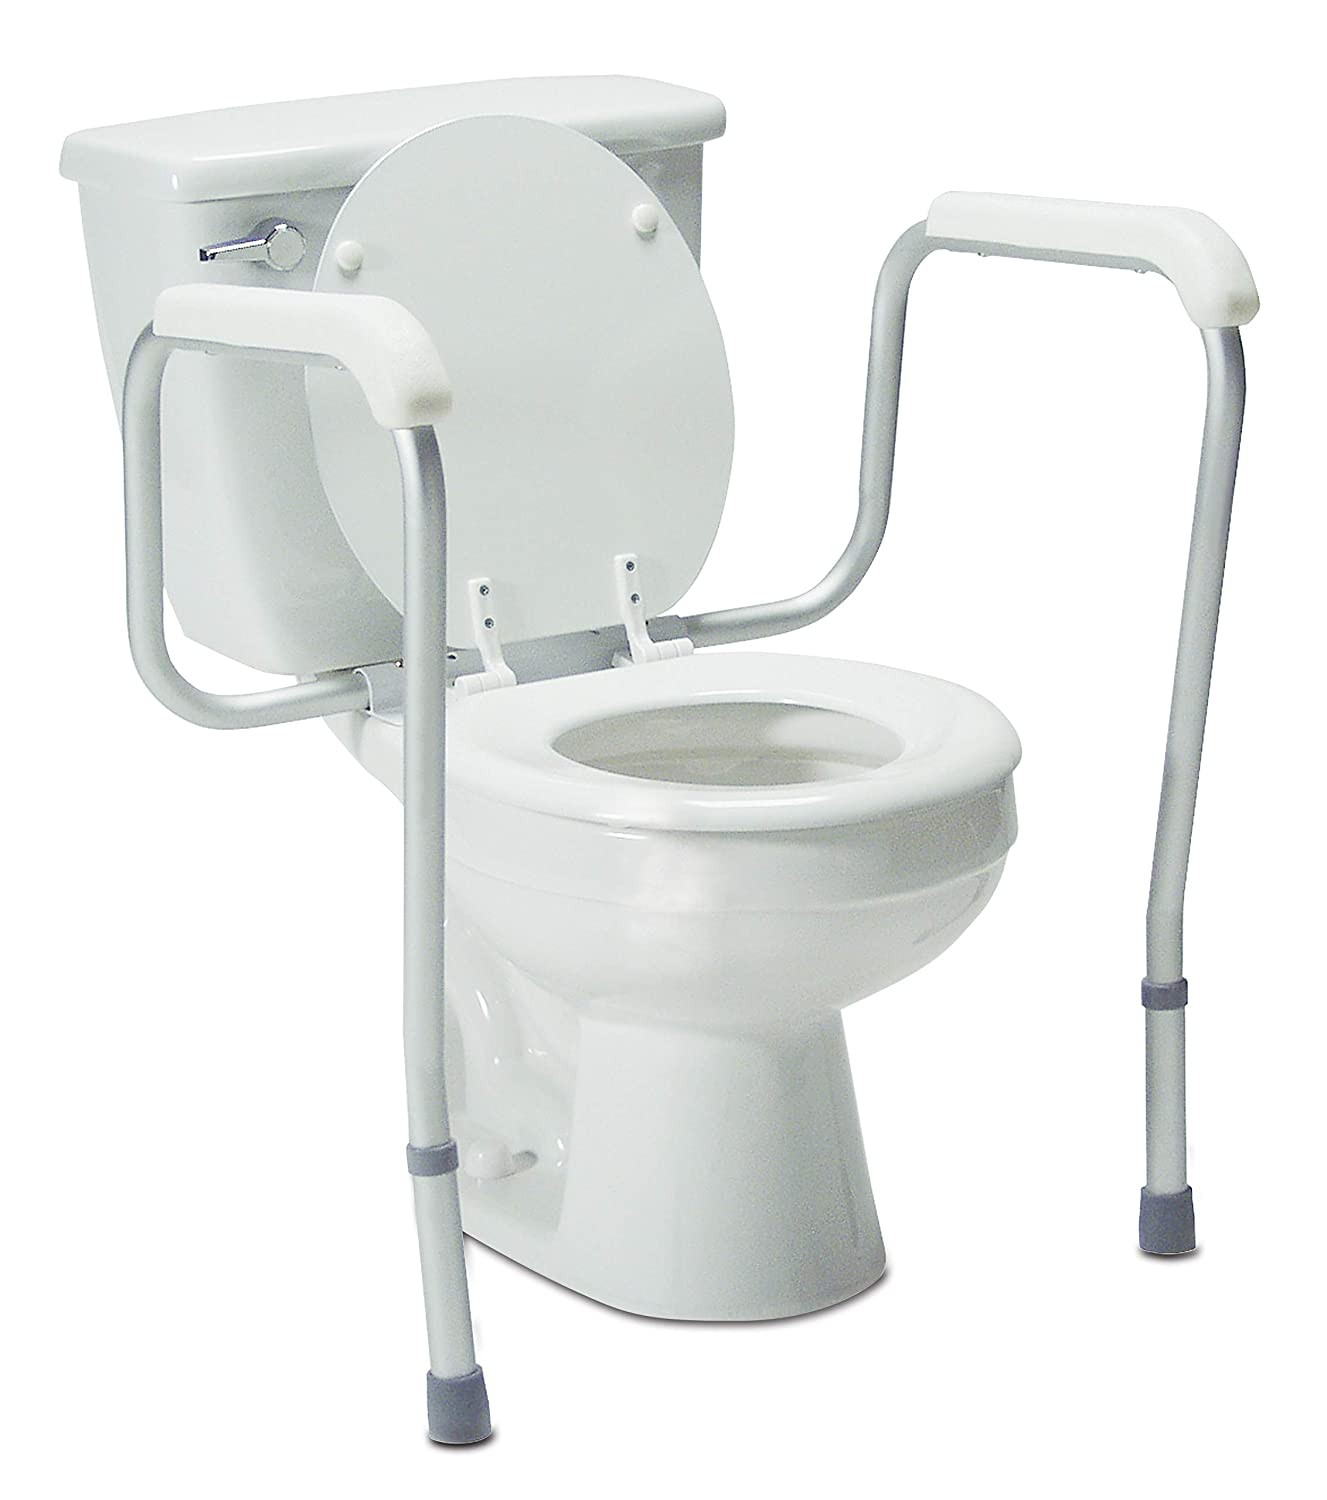 B000TVWTEK Lumex Versaframe Toilet Safety Rails with Adjustable Height and Width, 6460A (Pack of 4) 71G8cNh5gzL._SL1500_